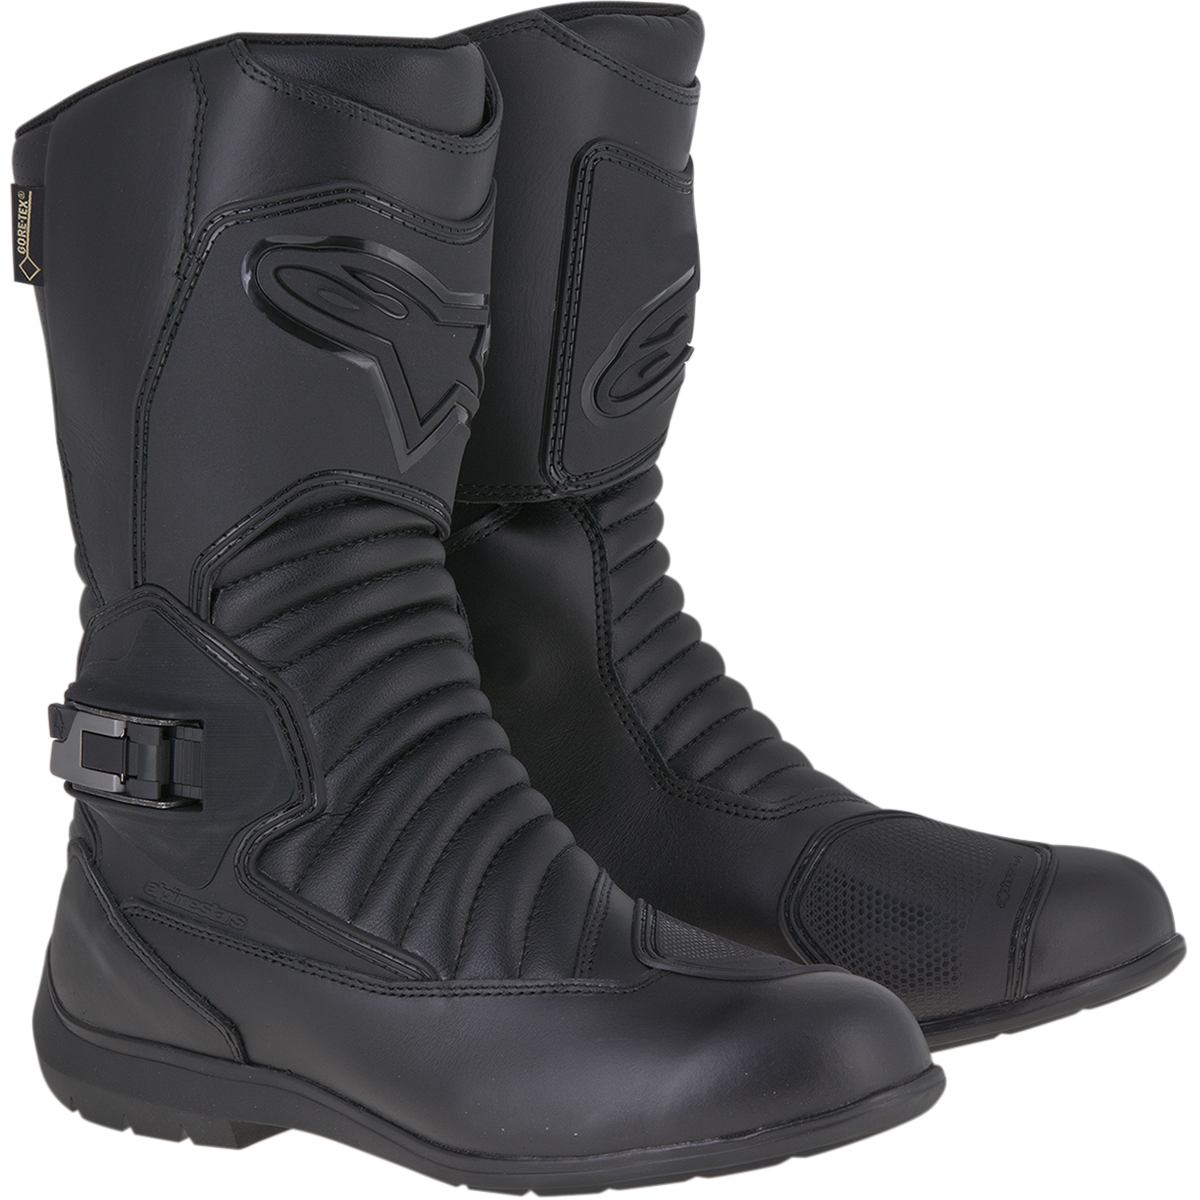 Supertouring Gore-Tex<sup>&reg;</sup> Boots